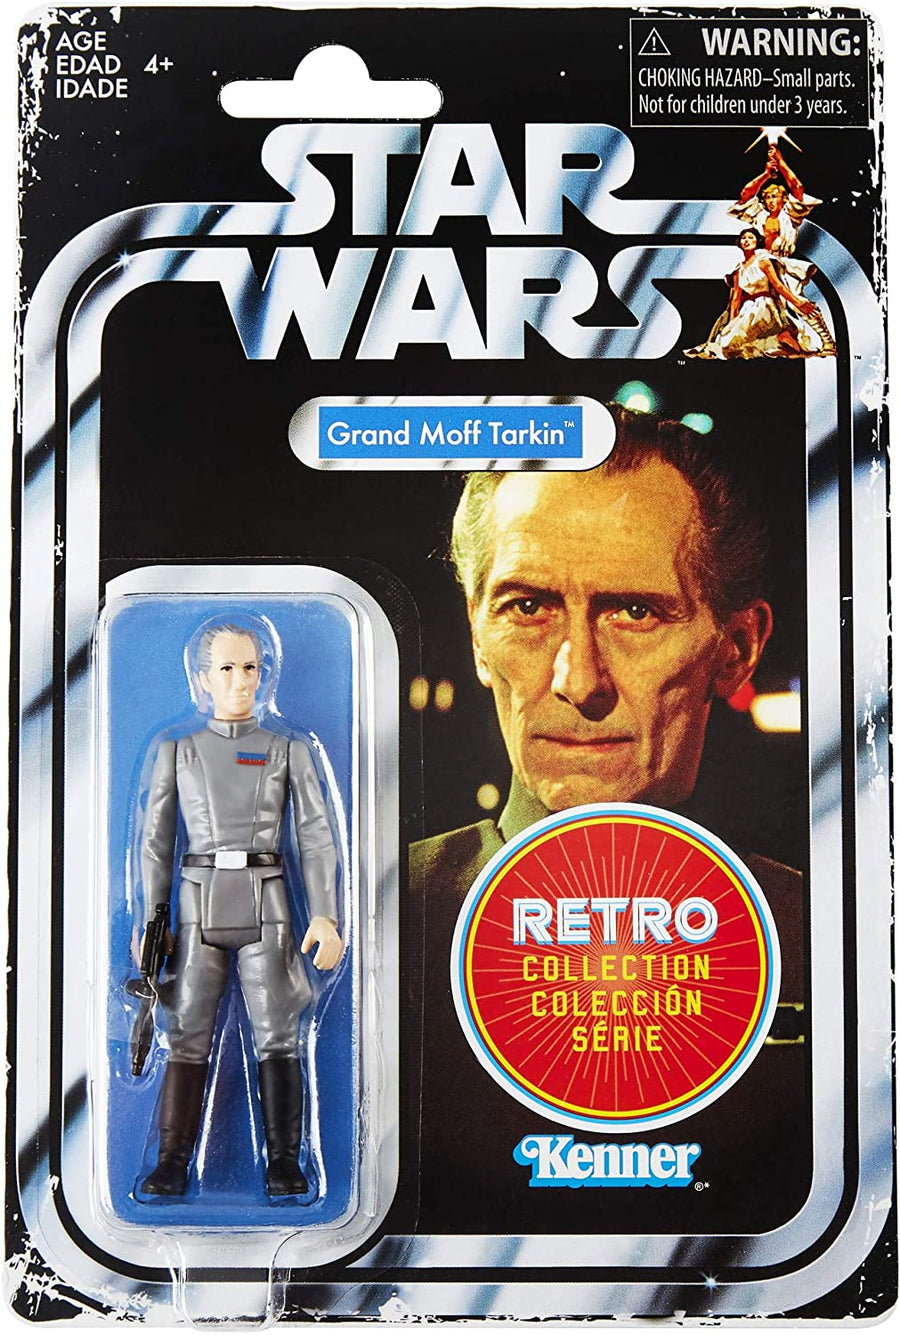 Star Wars The Retro Board Game w/ Moff Tarkin Action Figure Pre-Order SOLD OUT